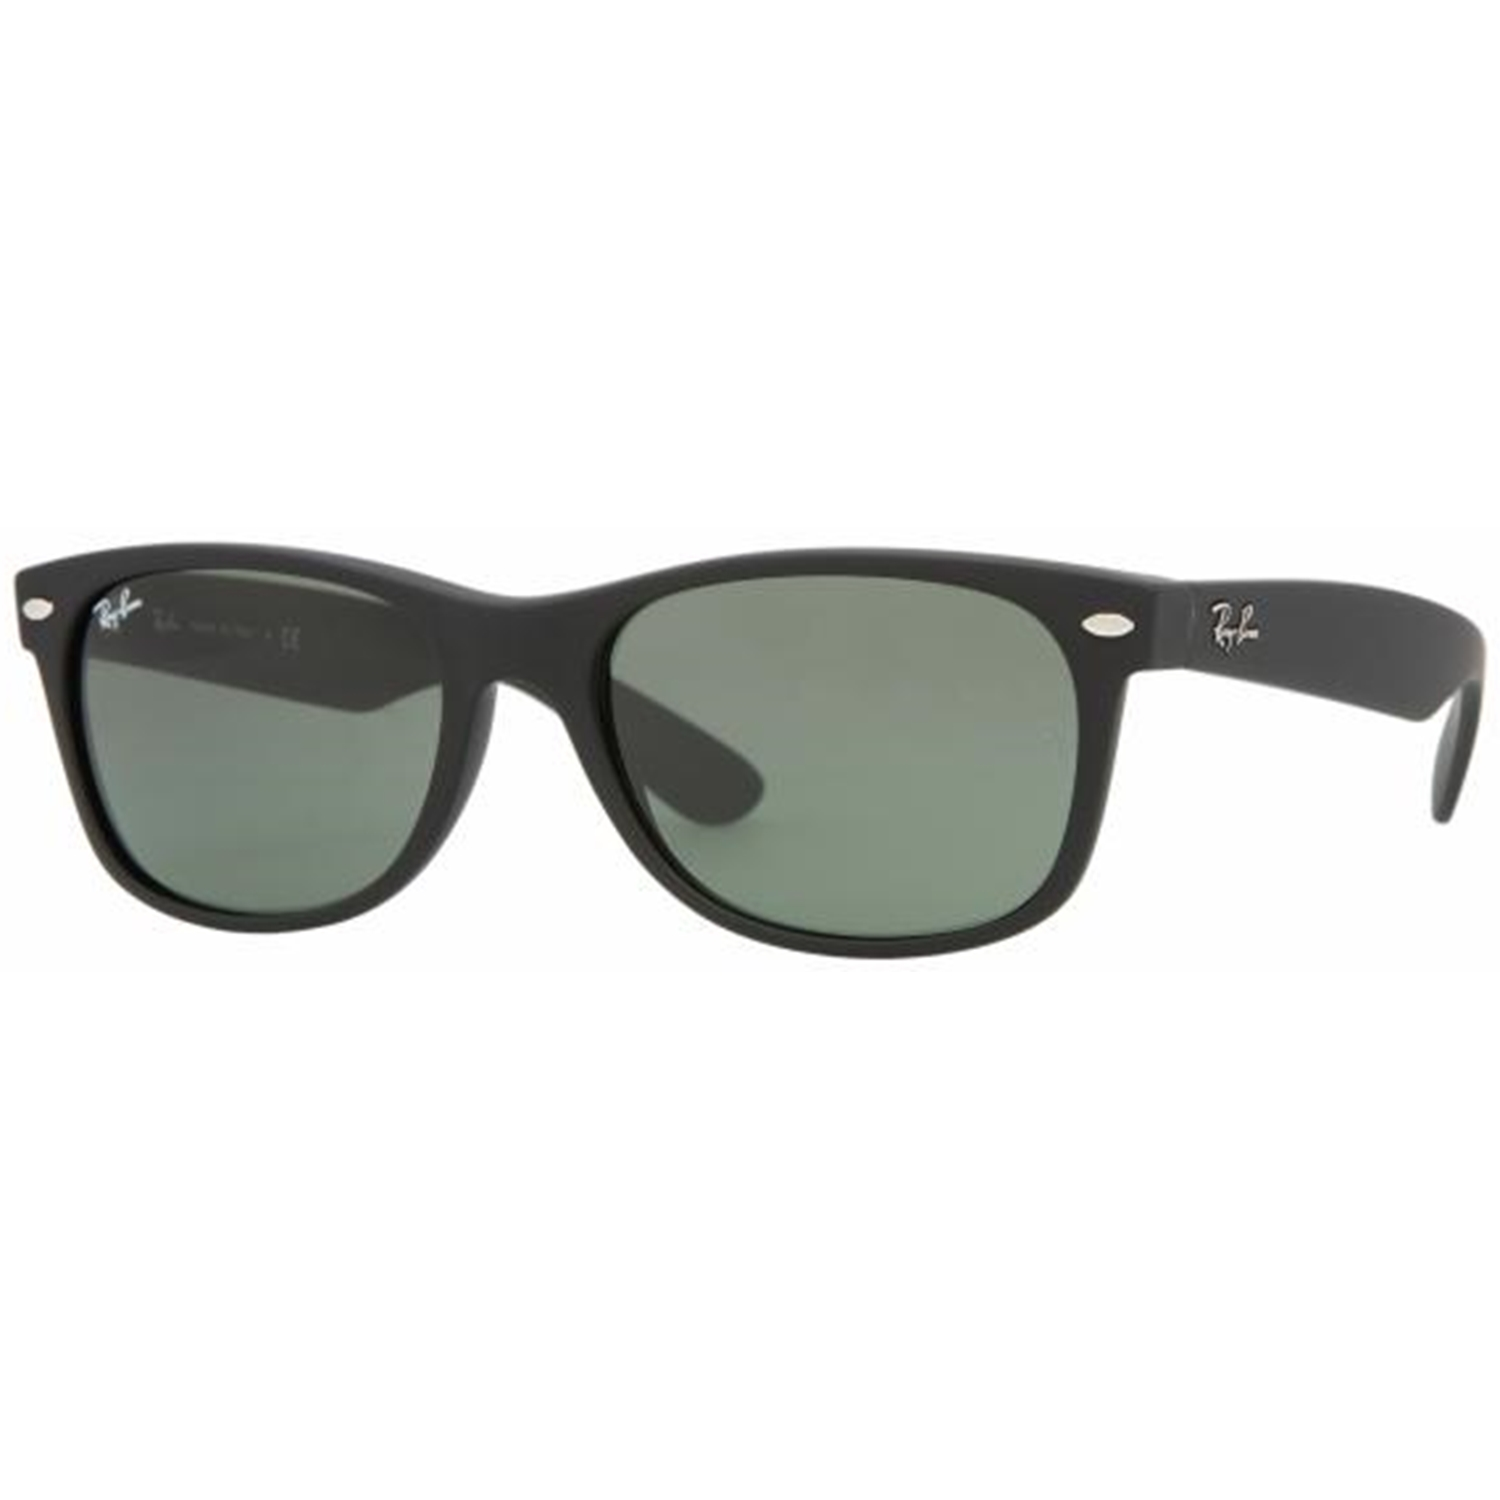 ray ban glass or polycarbonate  ray ban polycarbonate vs glass